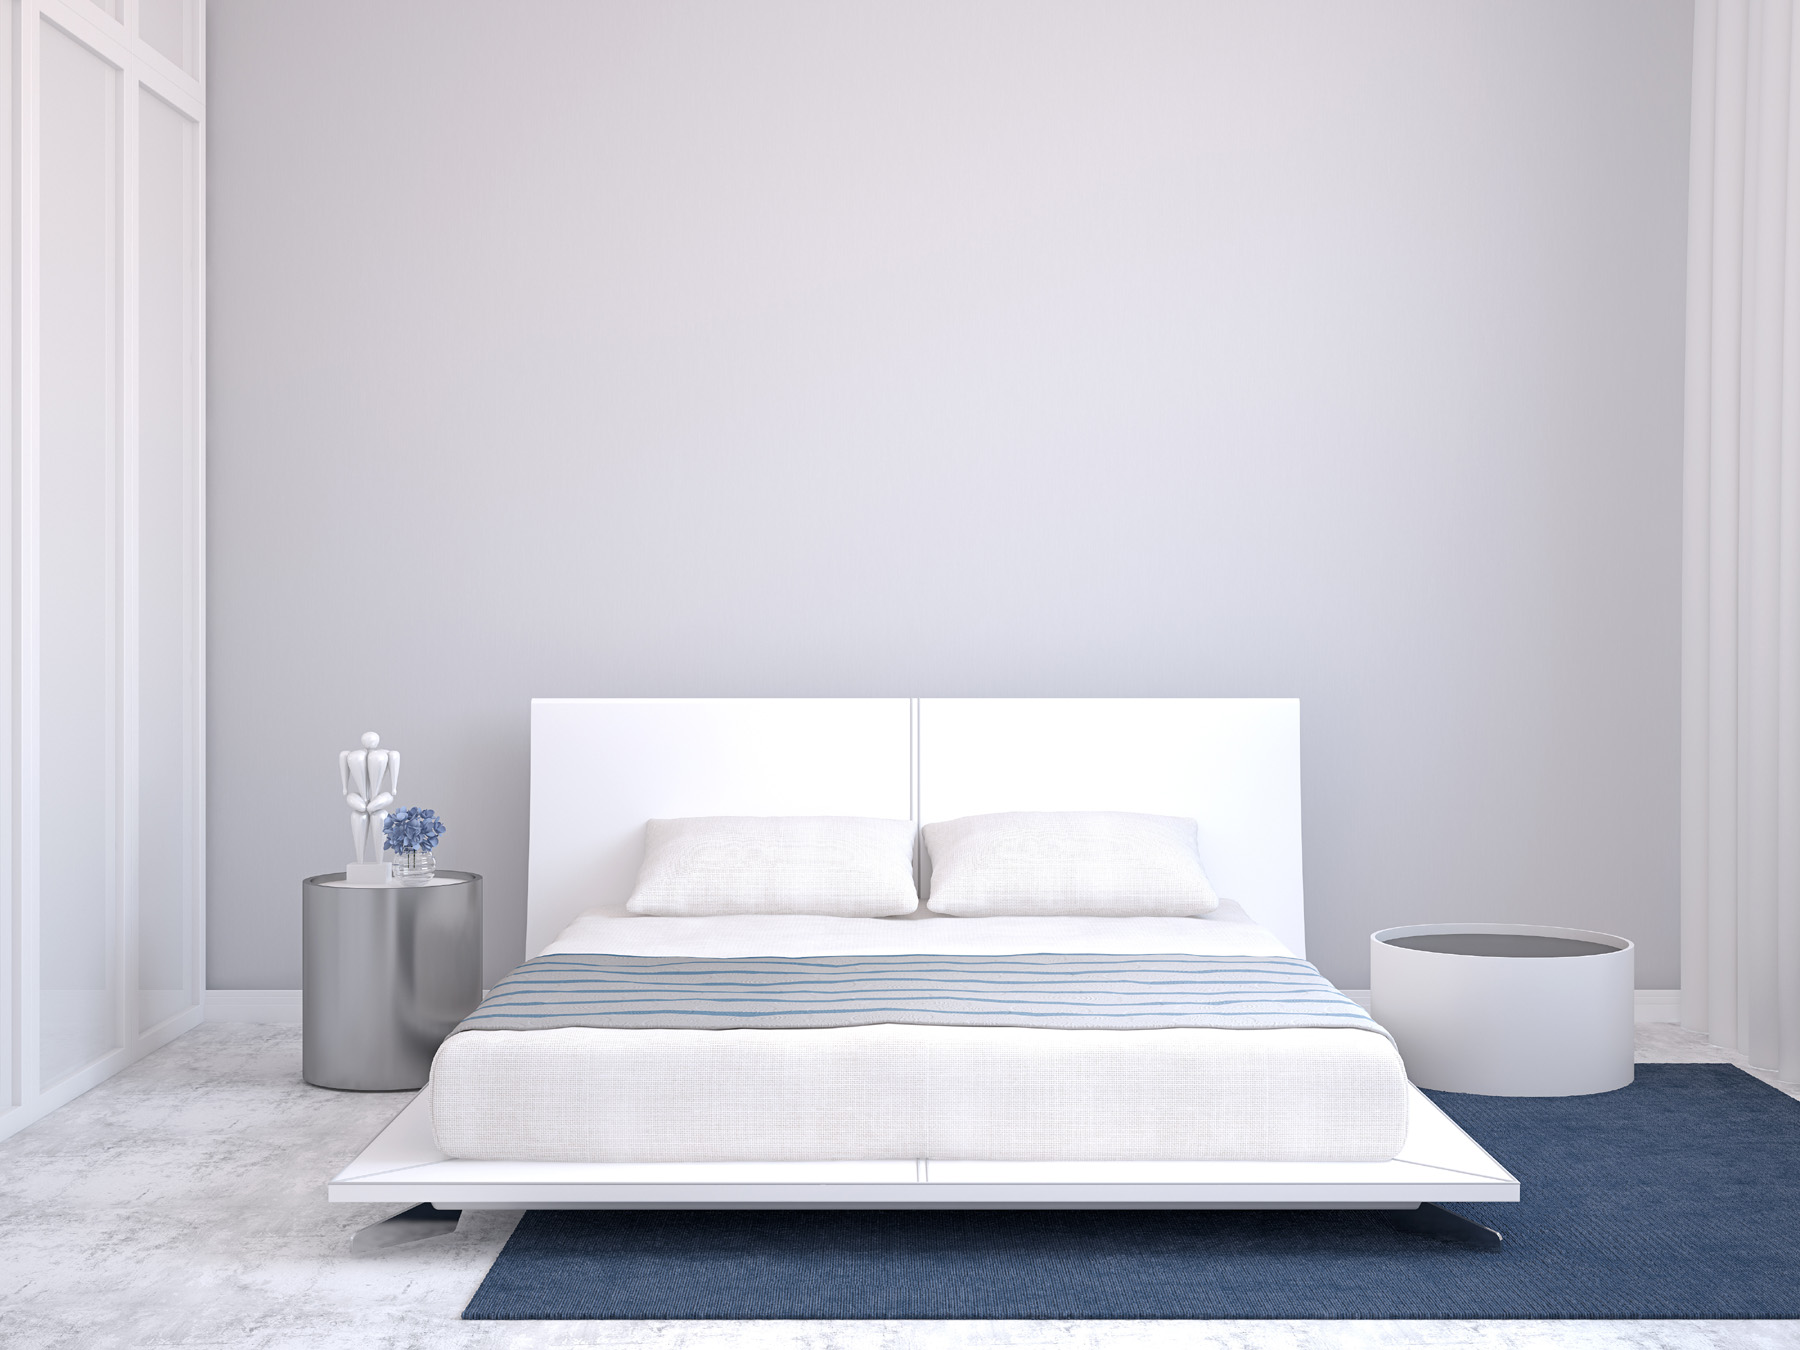 Bedroom white big bed, rendering 51820